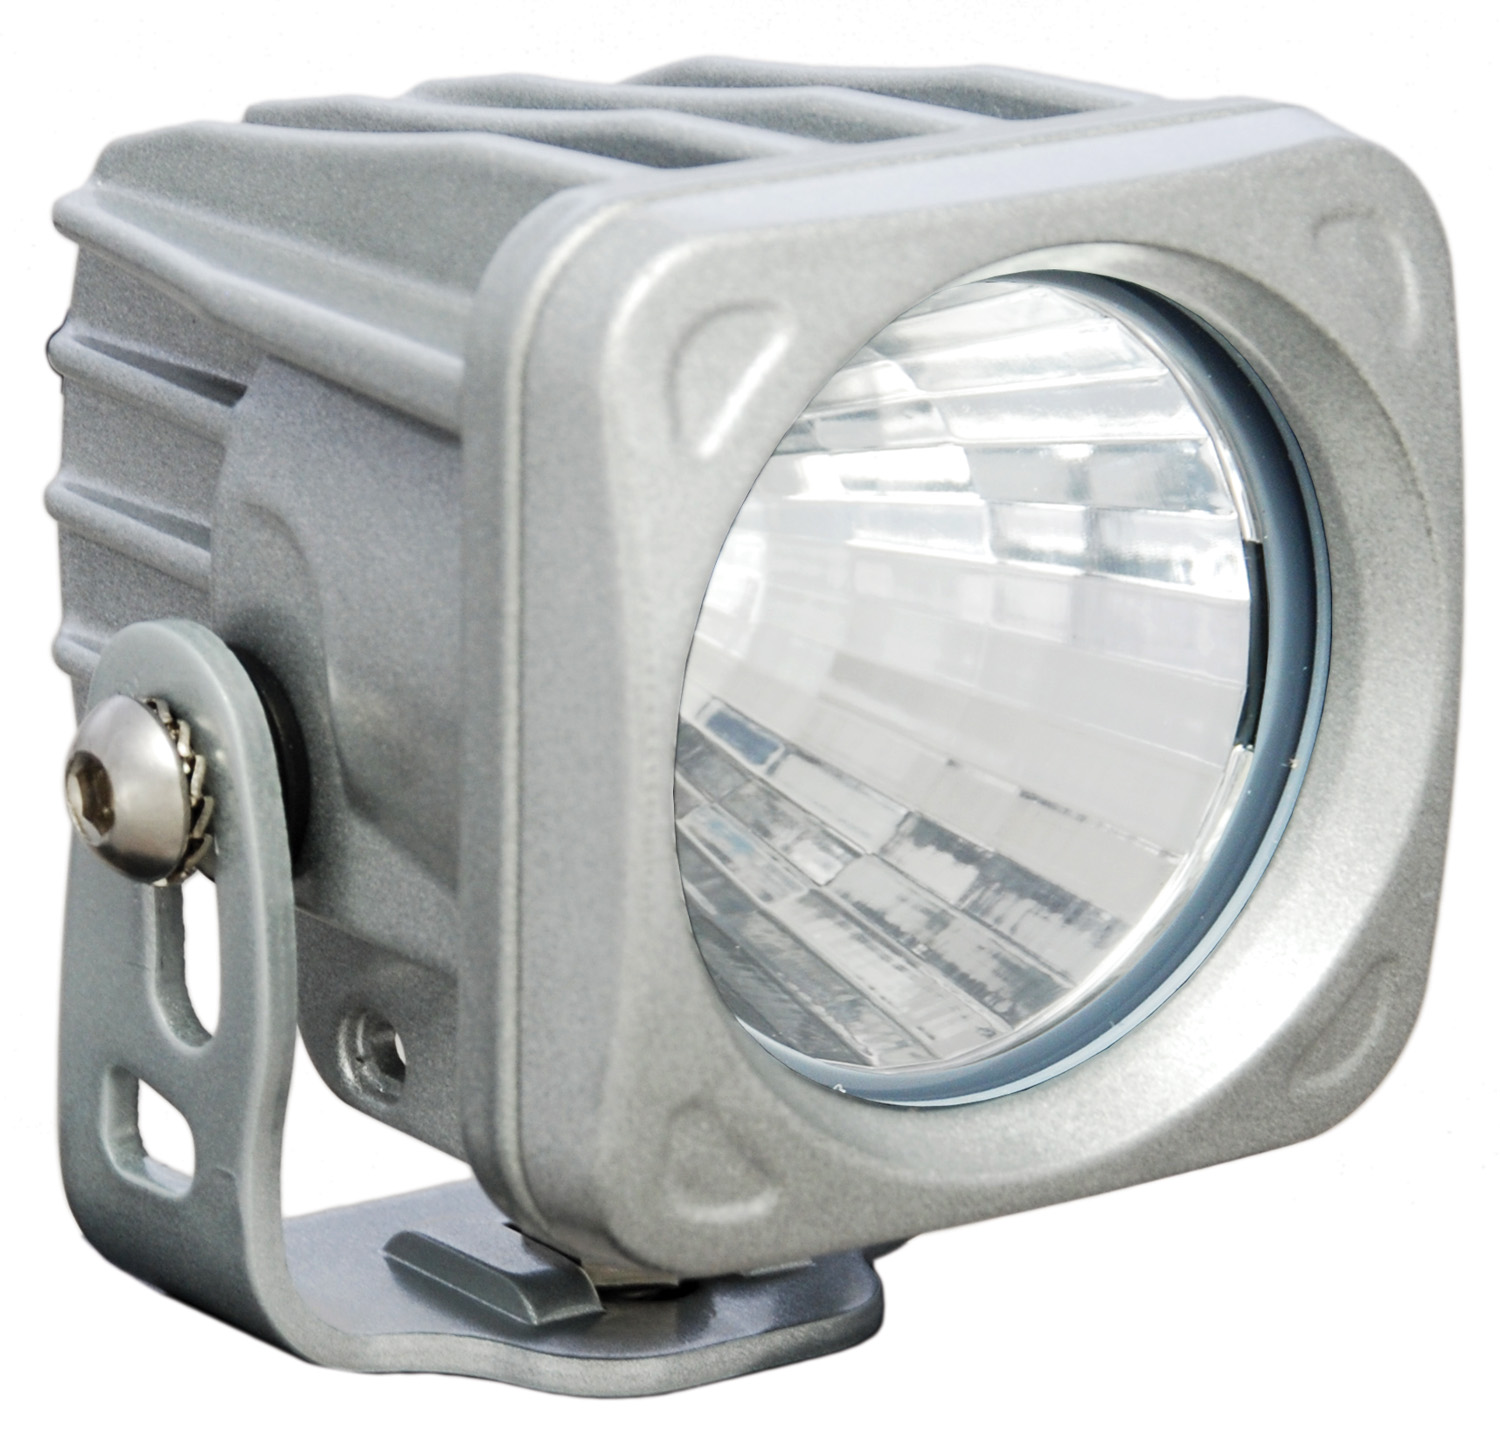 OPTIMUS SQUARE SILVER 1 10W LED 20° MEDIUM